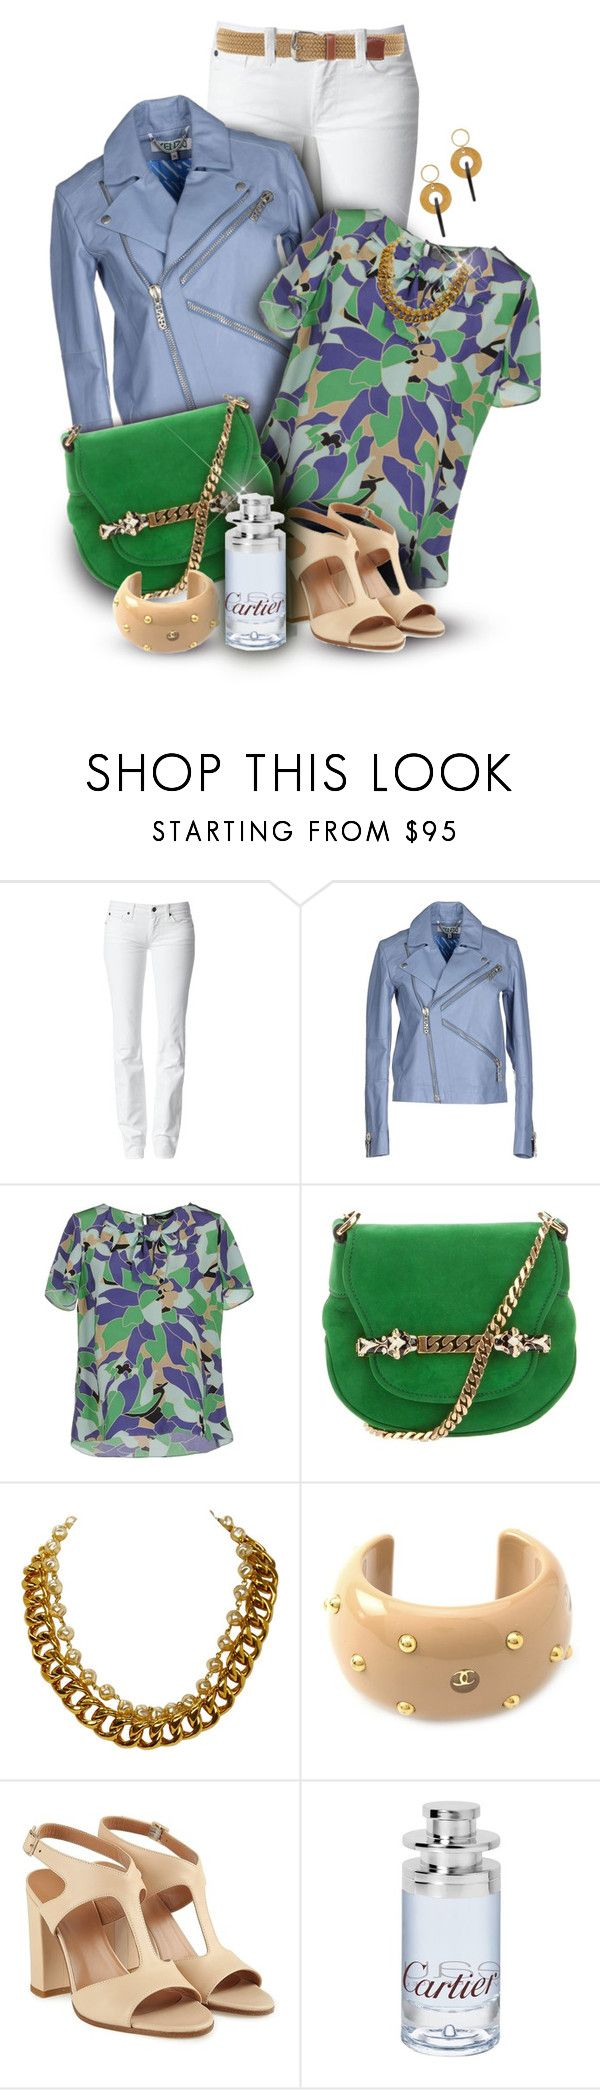 """""""White Jeans & Rena Lange Blouse"""" by franceseattle ❤ liked on Polyvore featuring 7 For All Mankind, Kenzo, Rena Lange, Gucci, Chanel, Cartier and Loro Piana"""